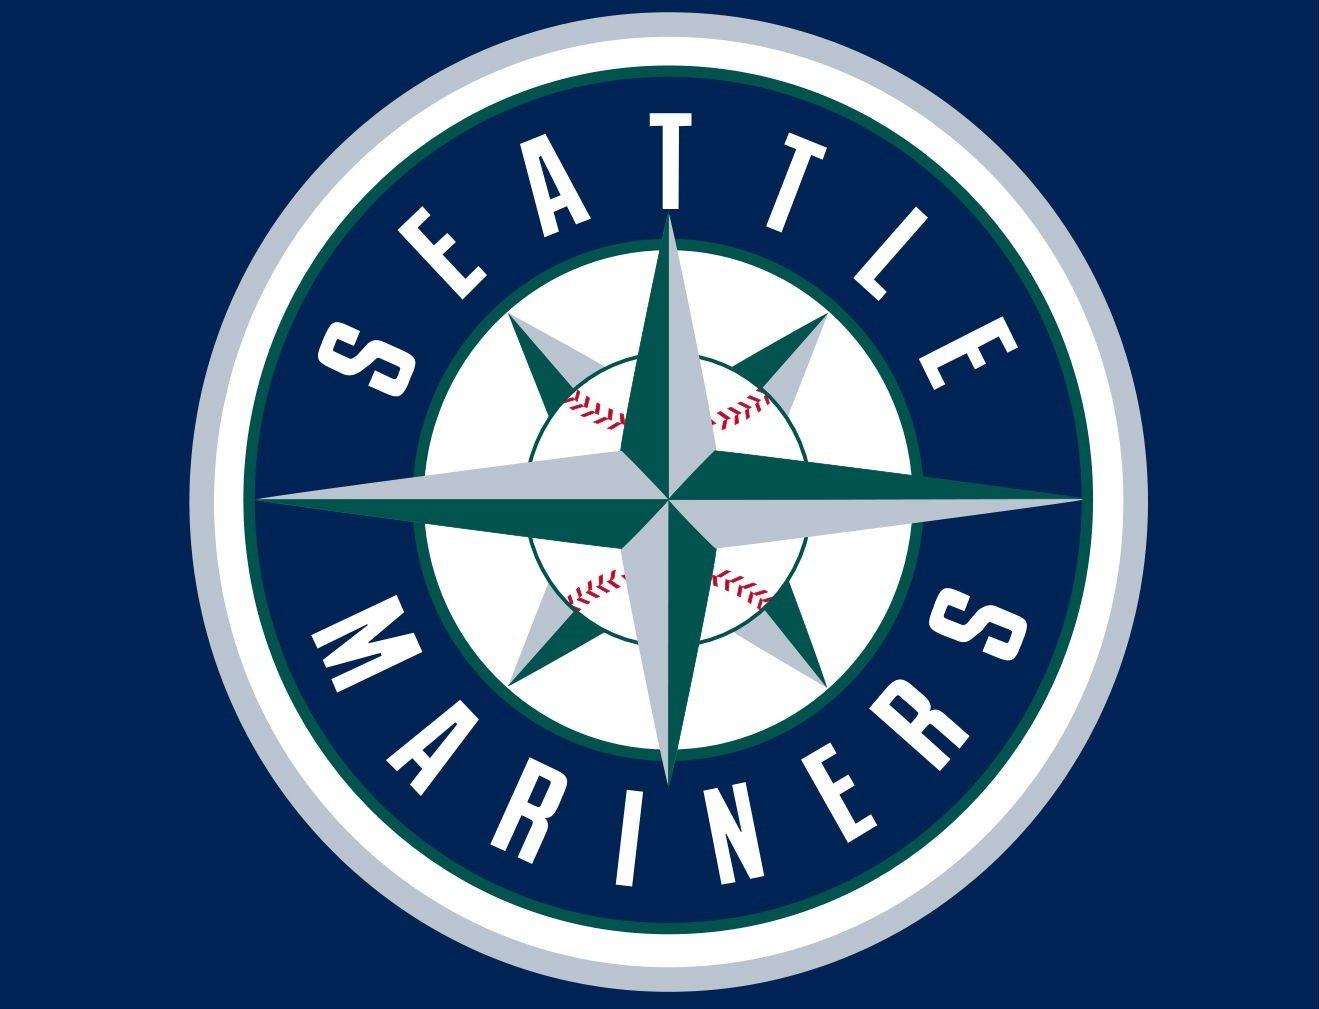 The Mariners have gotten outscored 41-5 in their last five games